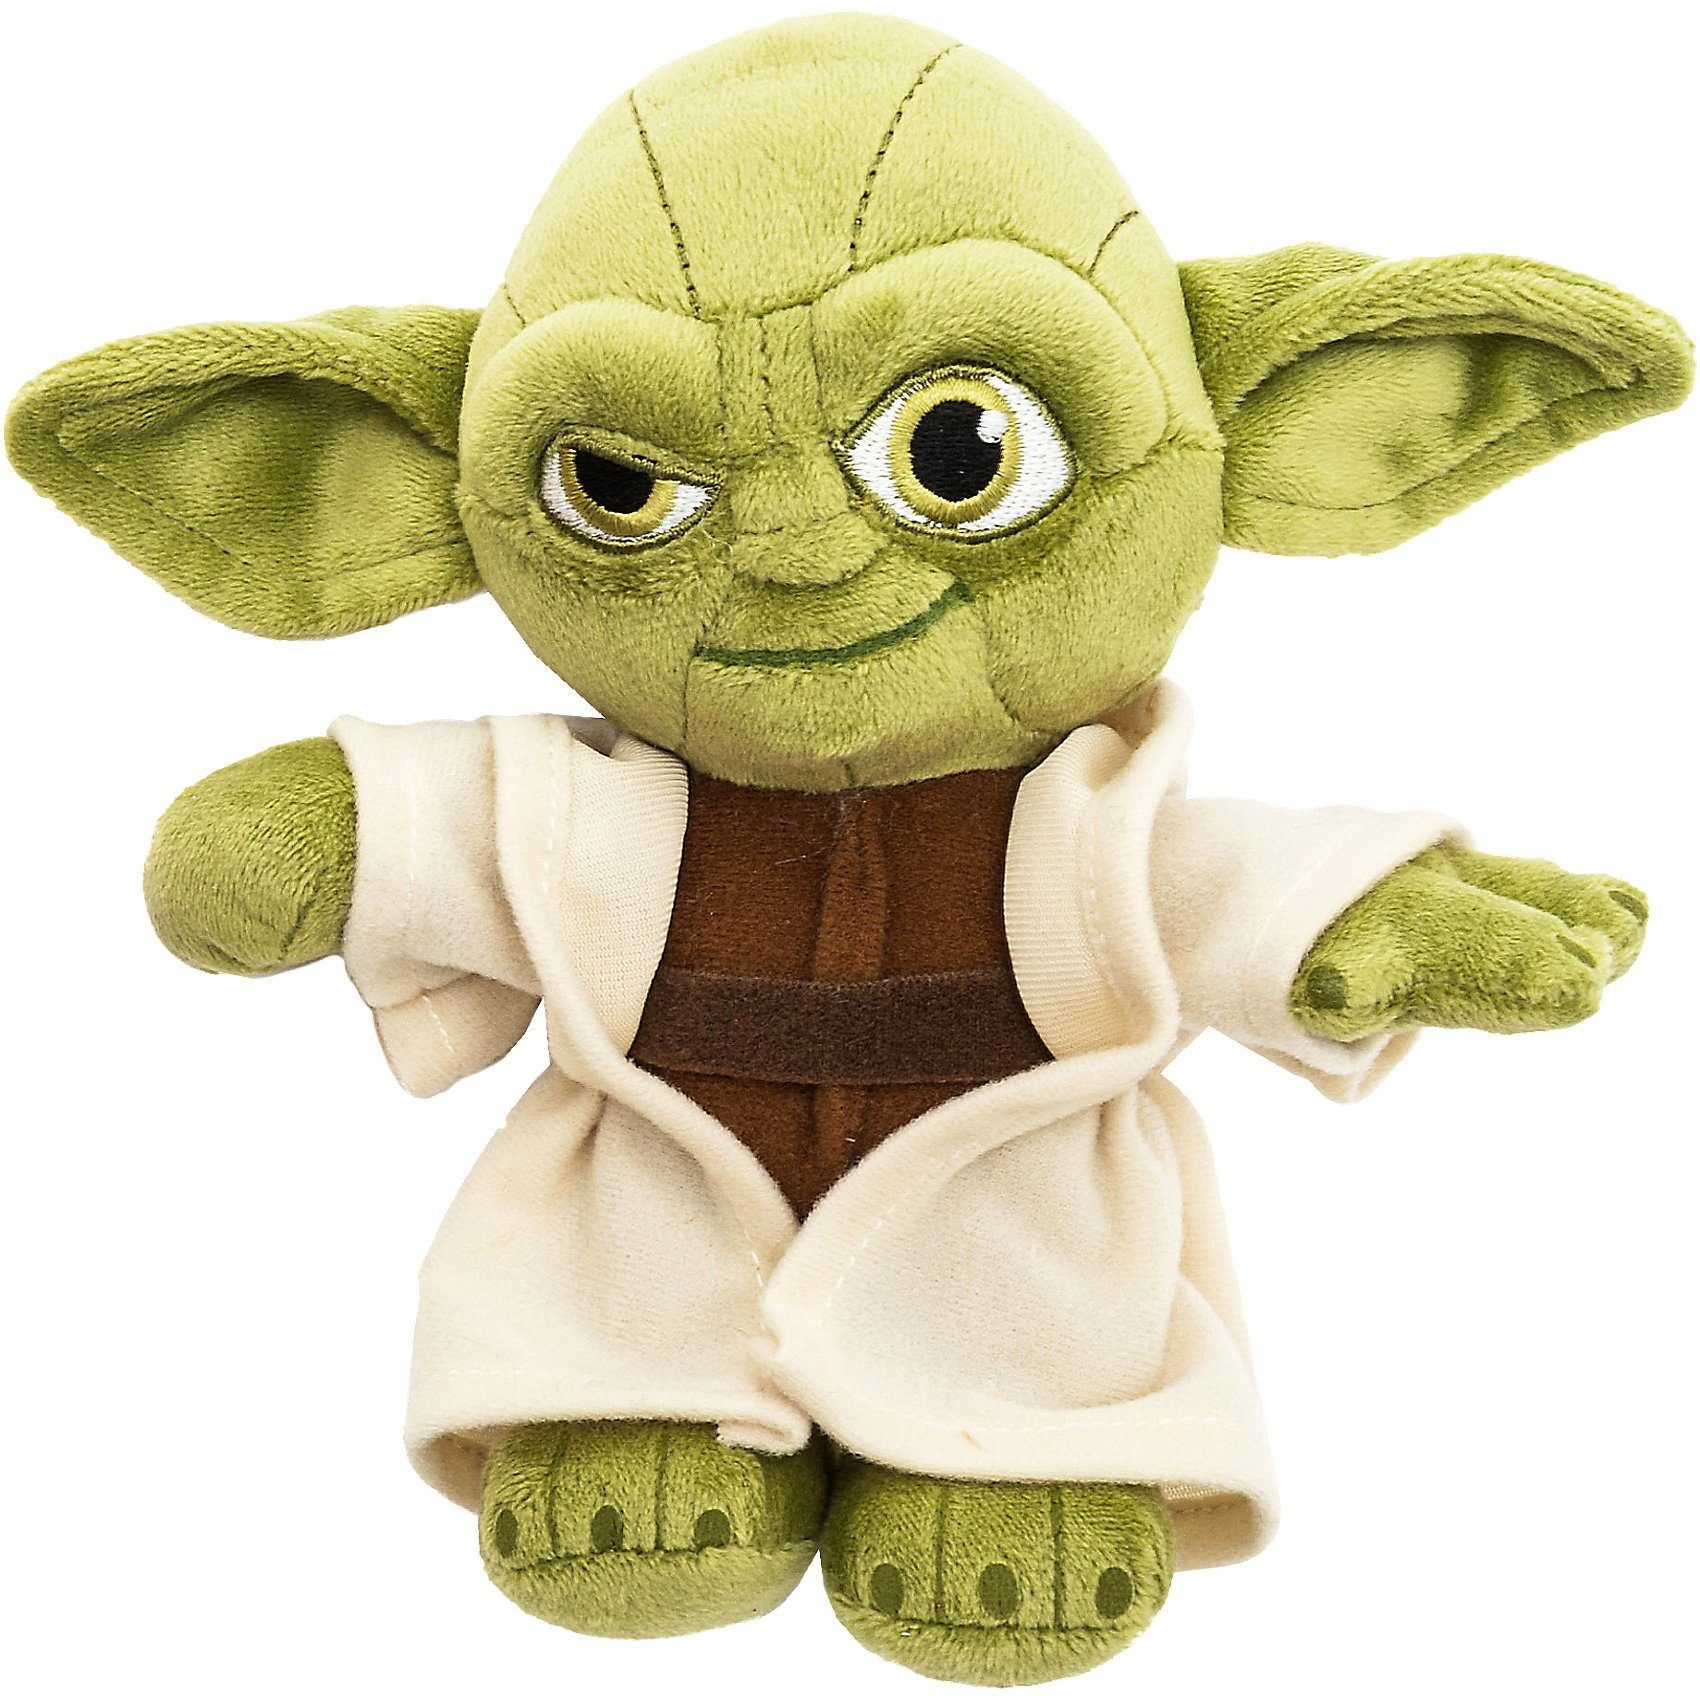 JOY TOY Velboa-Samtplüsch Yoda Star Wars, 20 cm